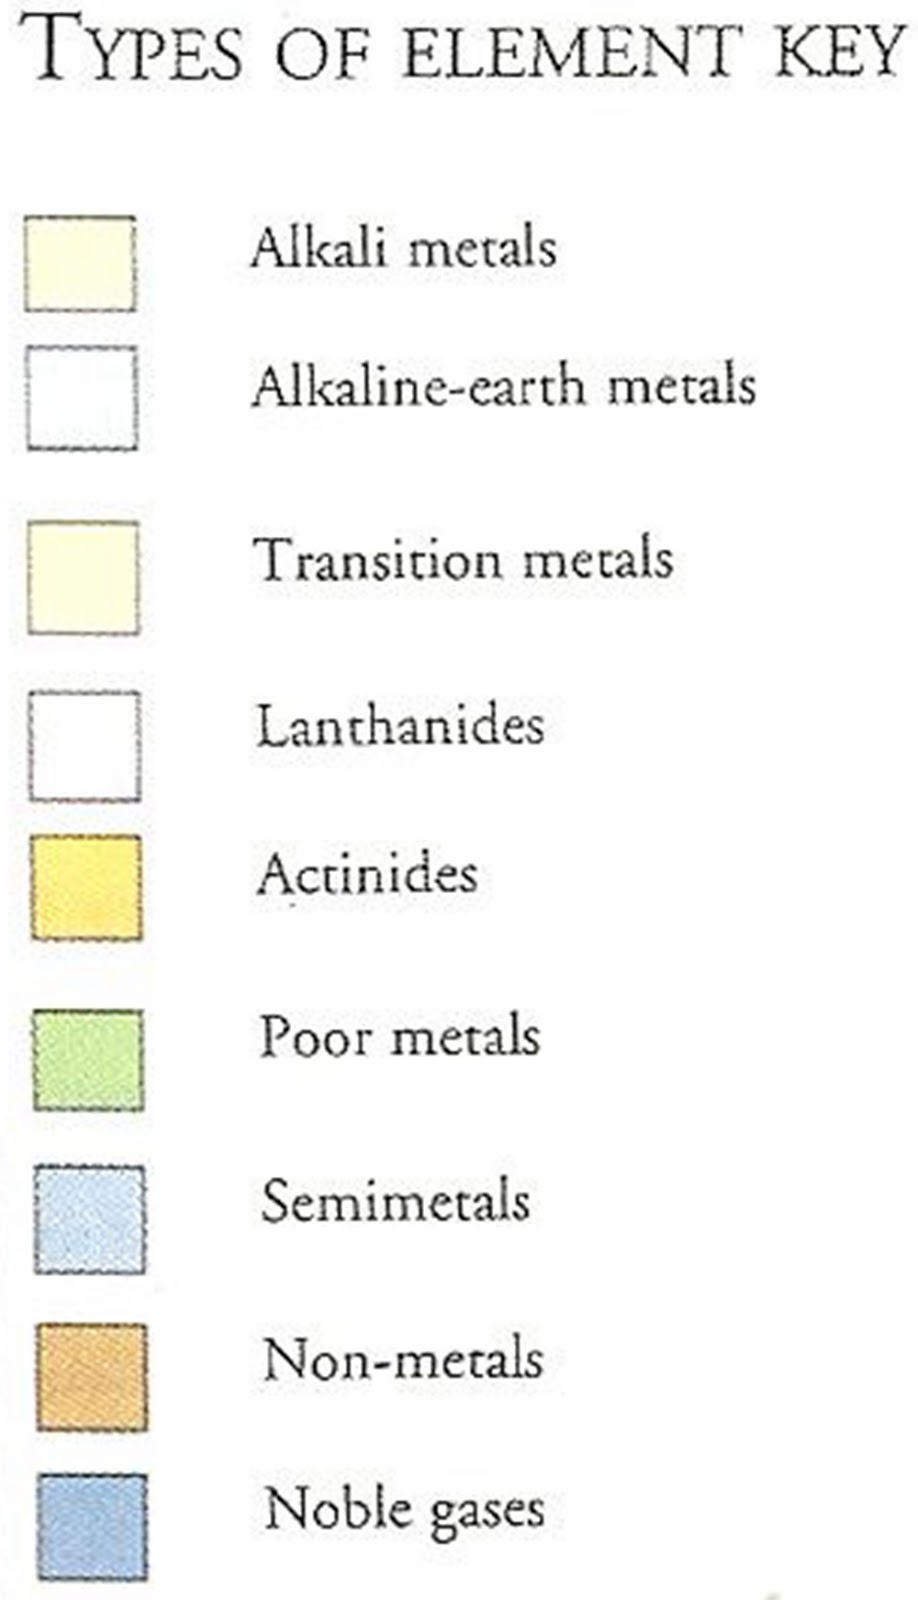 Manash subhaditya edusoft periodic table pictorial journey of periodic table pictorial journey of metals part 2 gamestrikefo Image collections